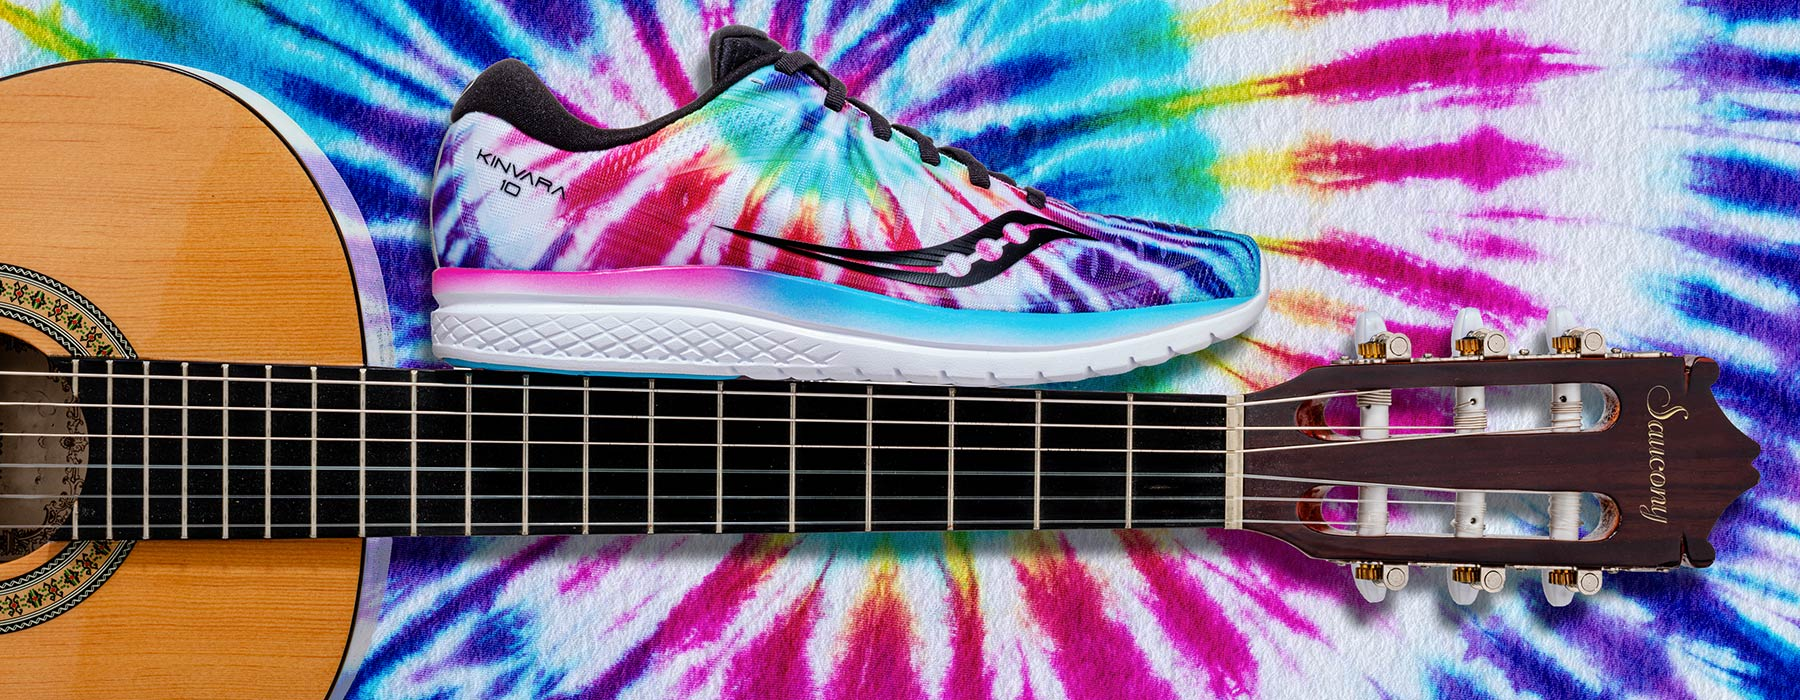 Tie Dyed Kinvara 10 on the neck of an acoustic guitar.